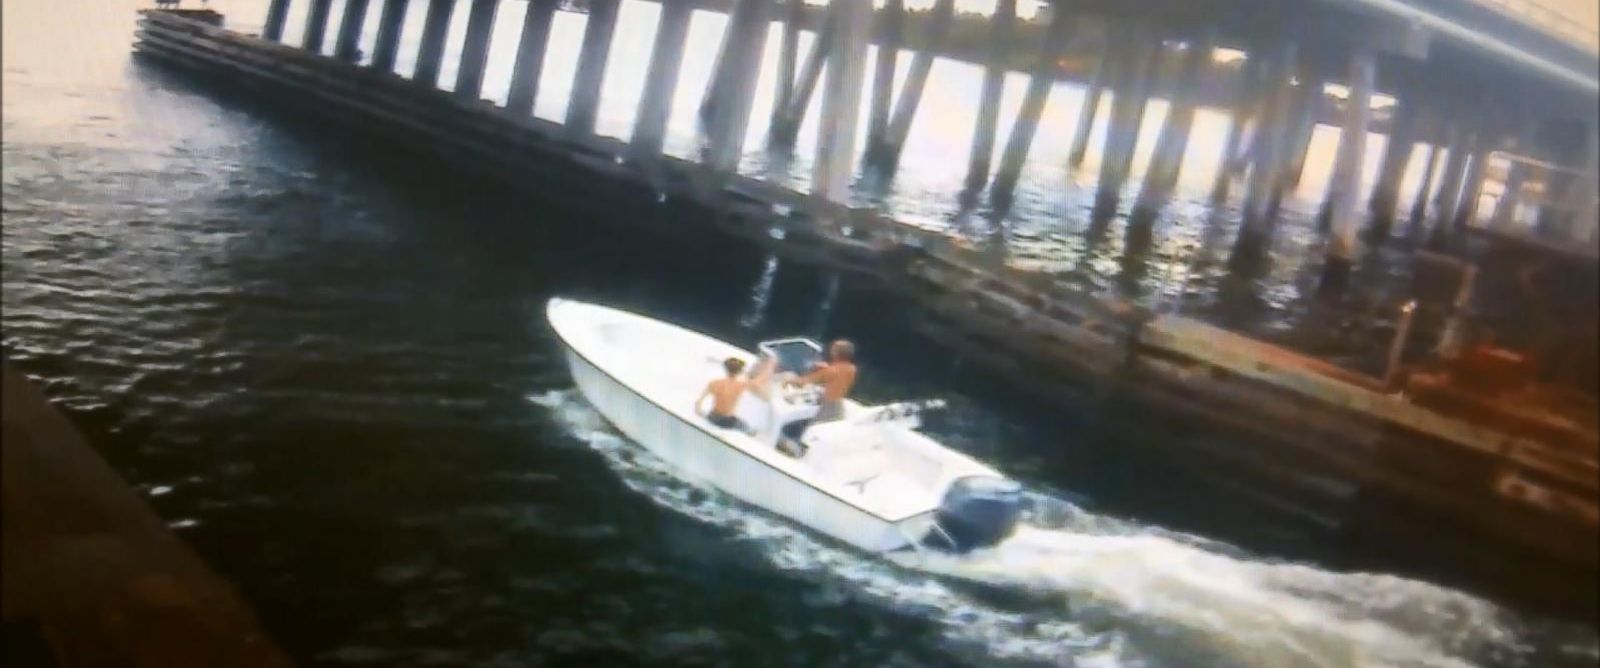 Video Shows Florida Teens Leaving Inlet the Day They Went Missing